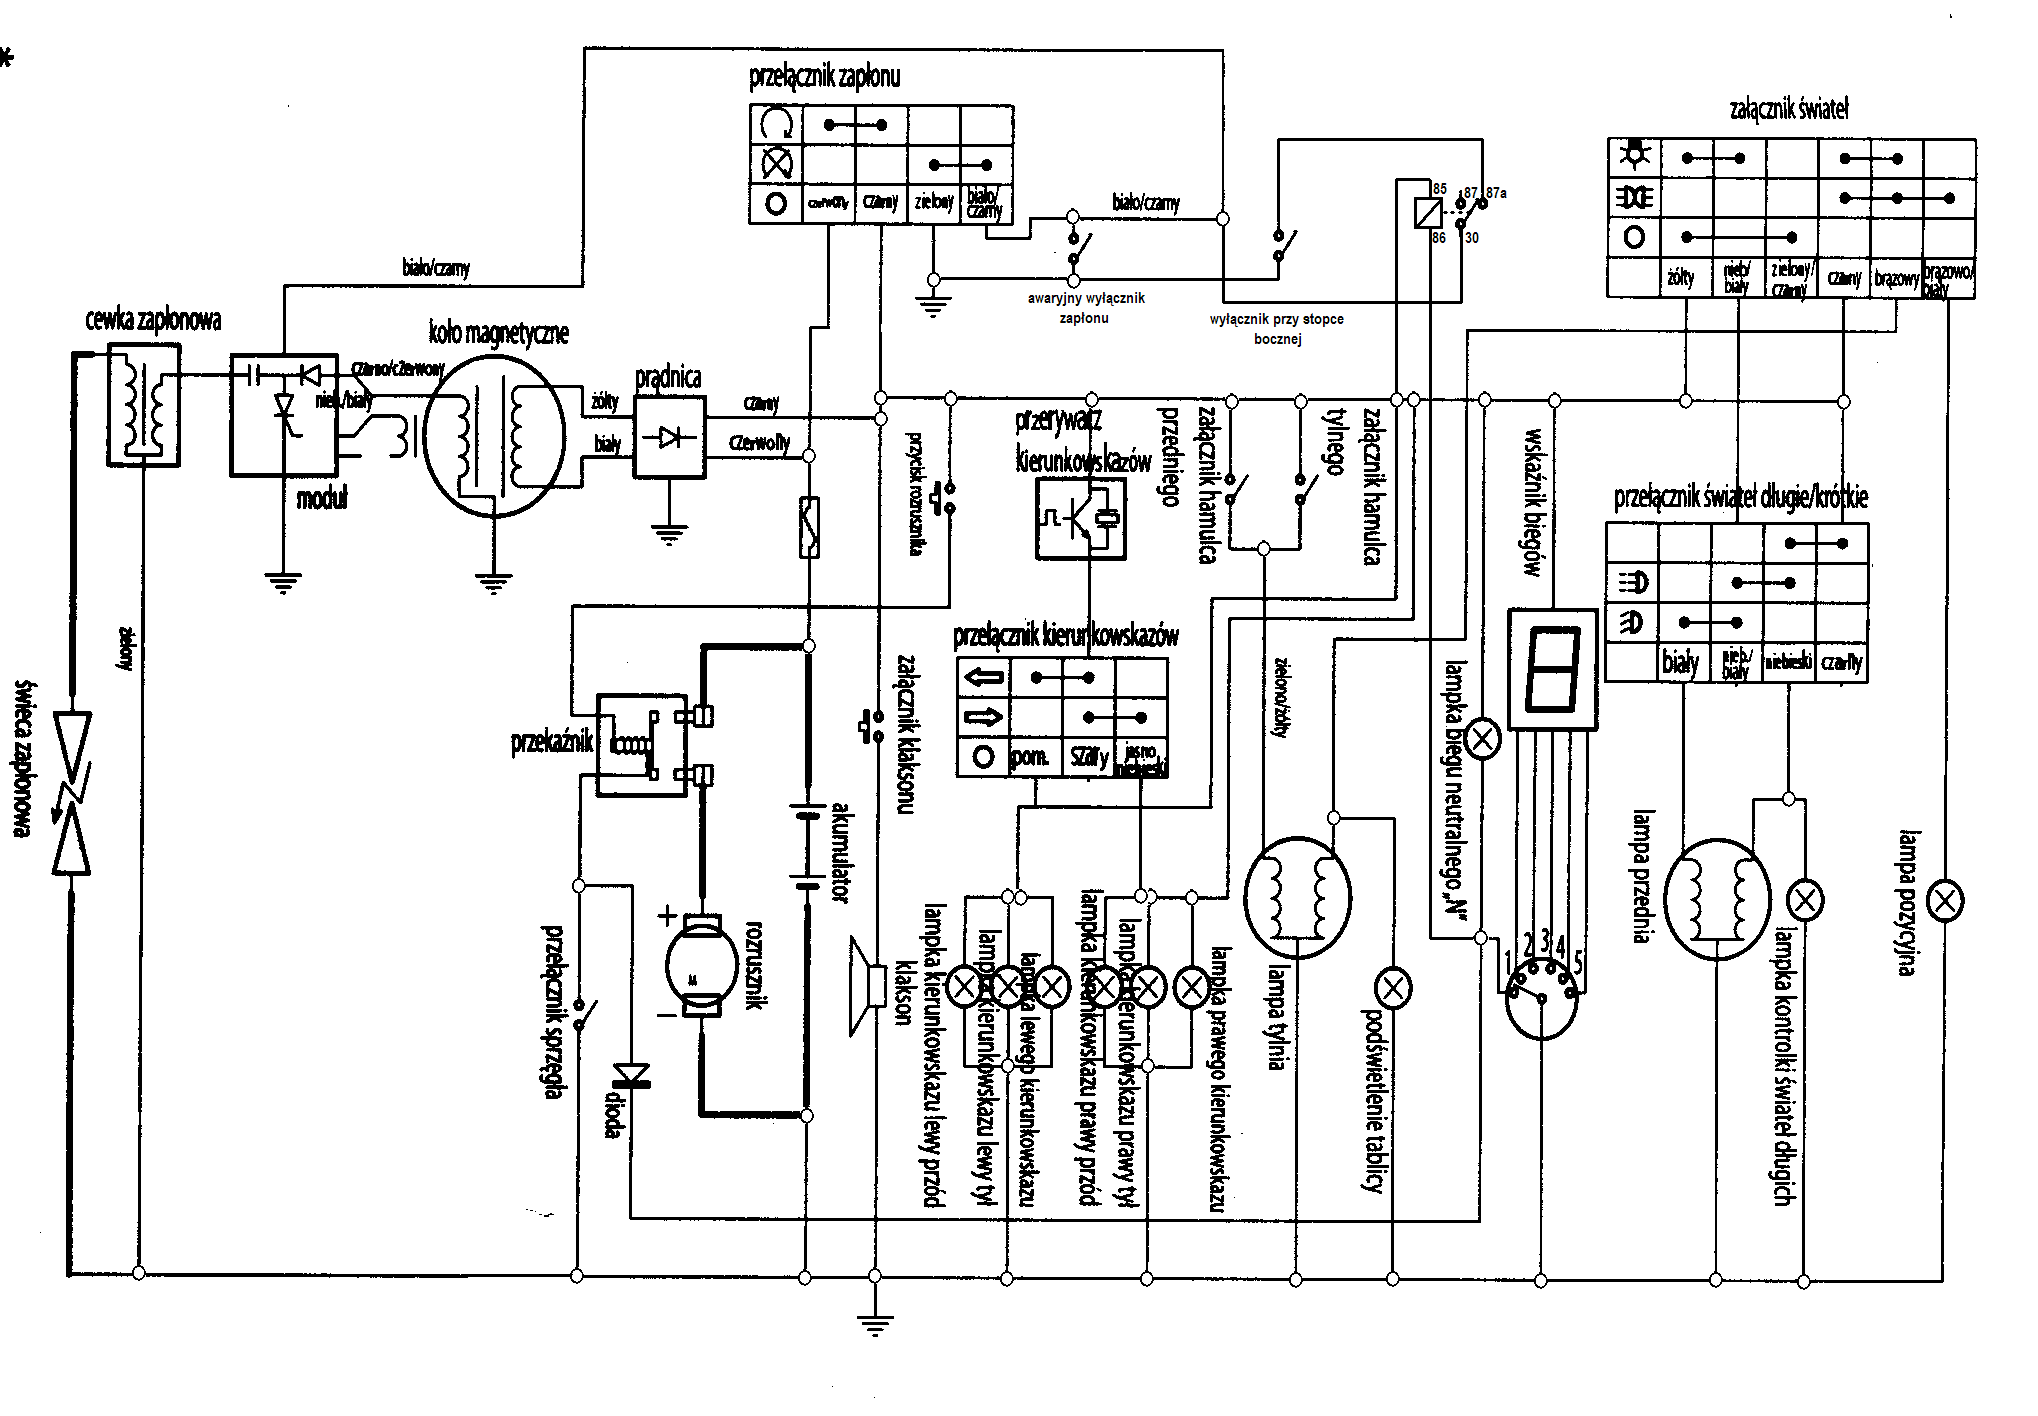 daelim motorcycle wiring diagrams with Wiring Diagram Daelim 125cc on Victory furthermore Honda Z50r Wiring Diagram furthermore 869907 also Wiring Diagram Daelim 125cc also Wiring Diagram Daelim 125cc.